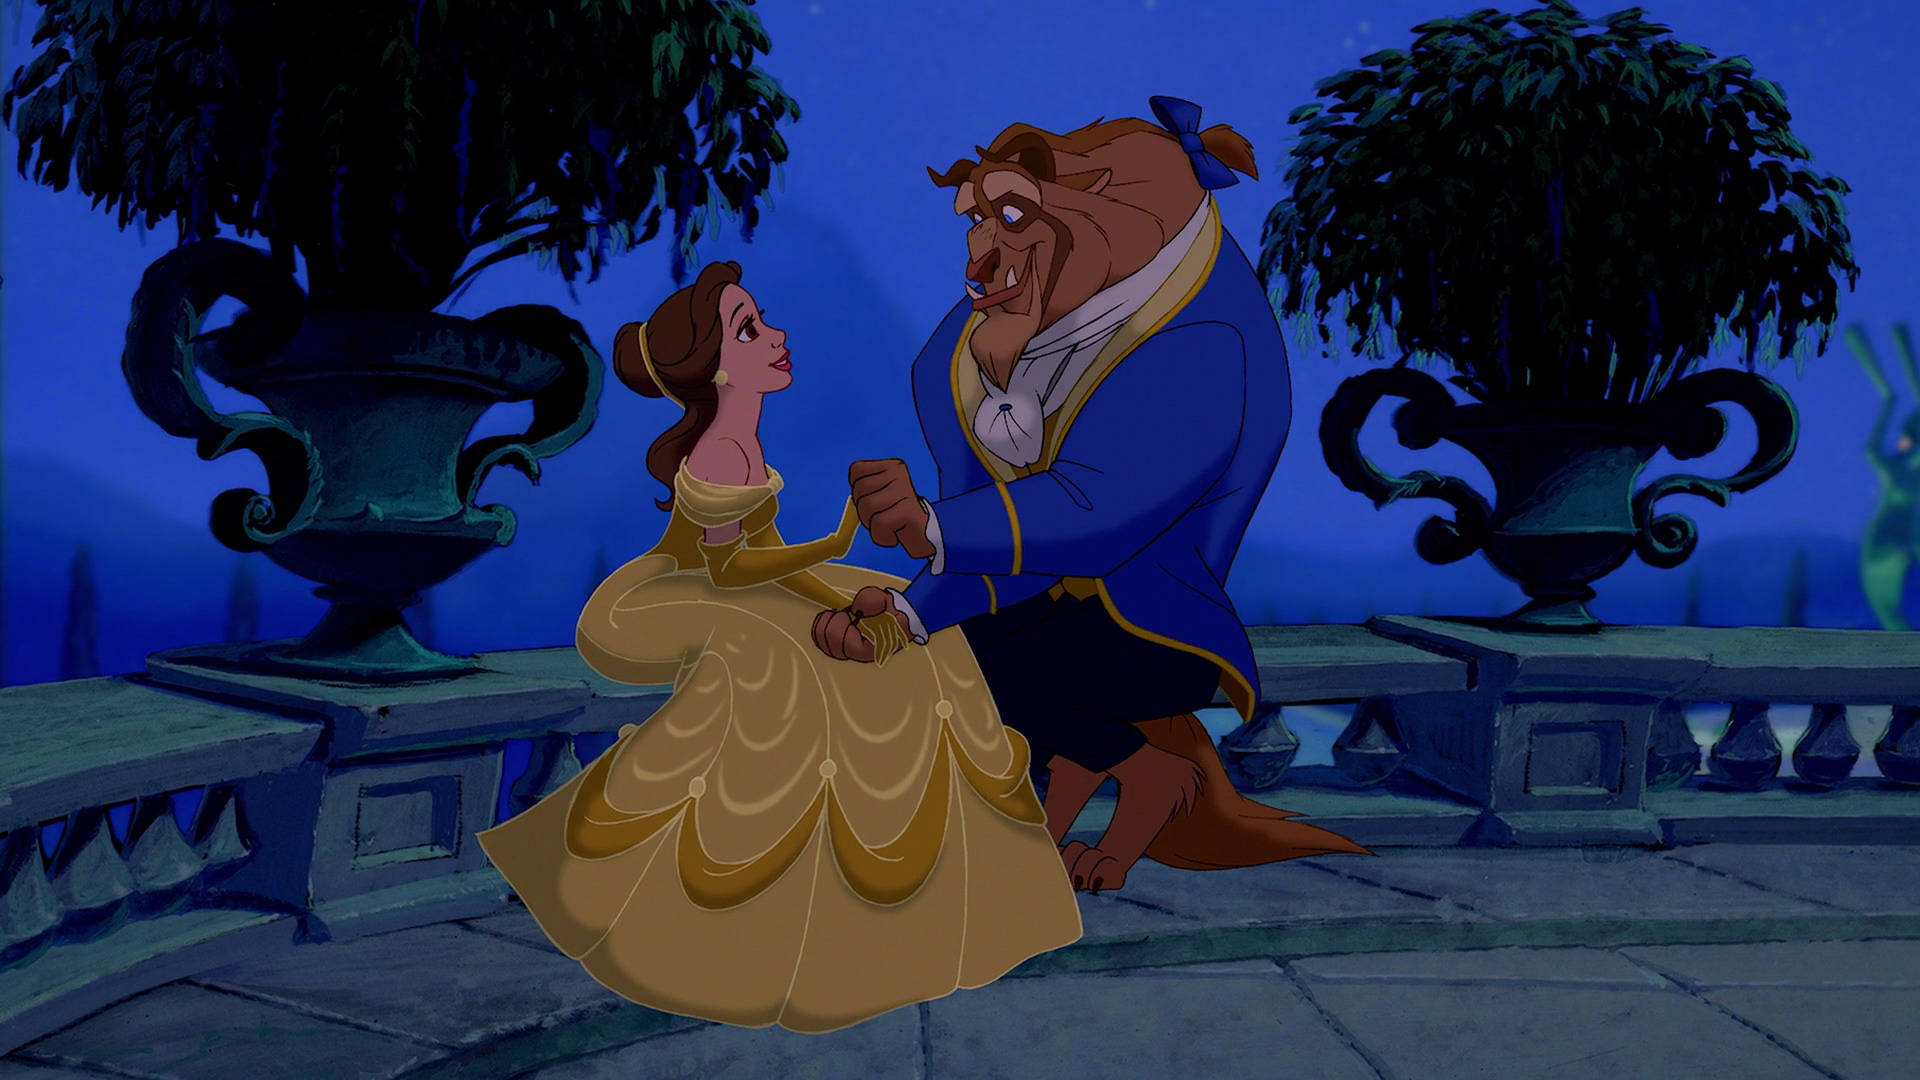 Belle and the Prince, Beauty and the Beast - The Cartoon